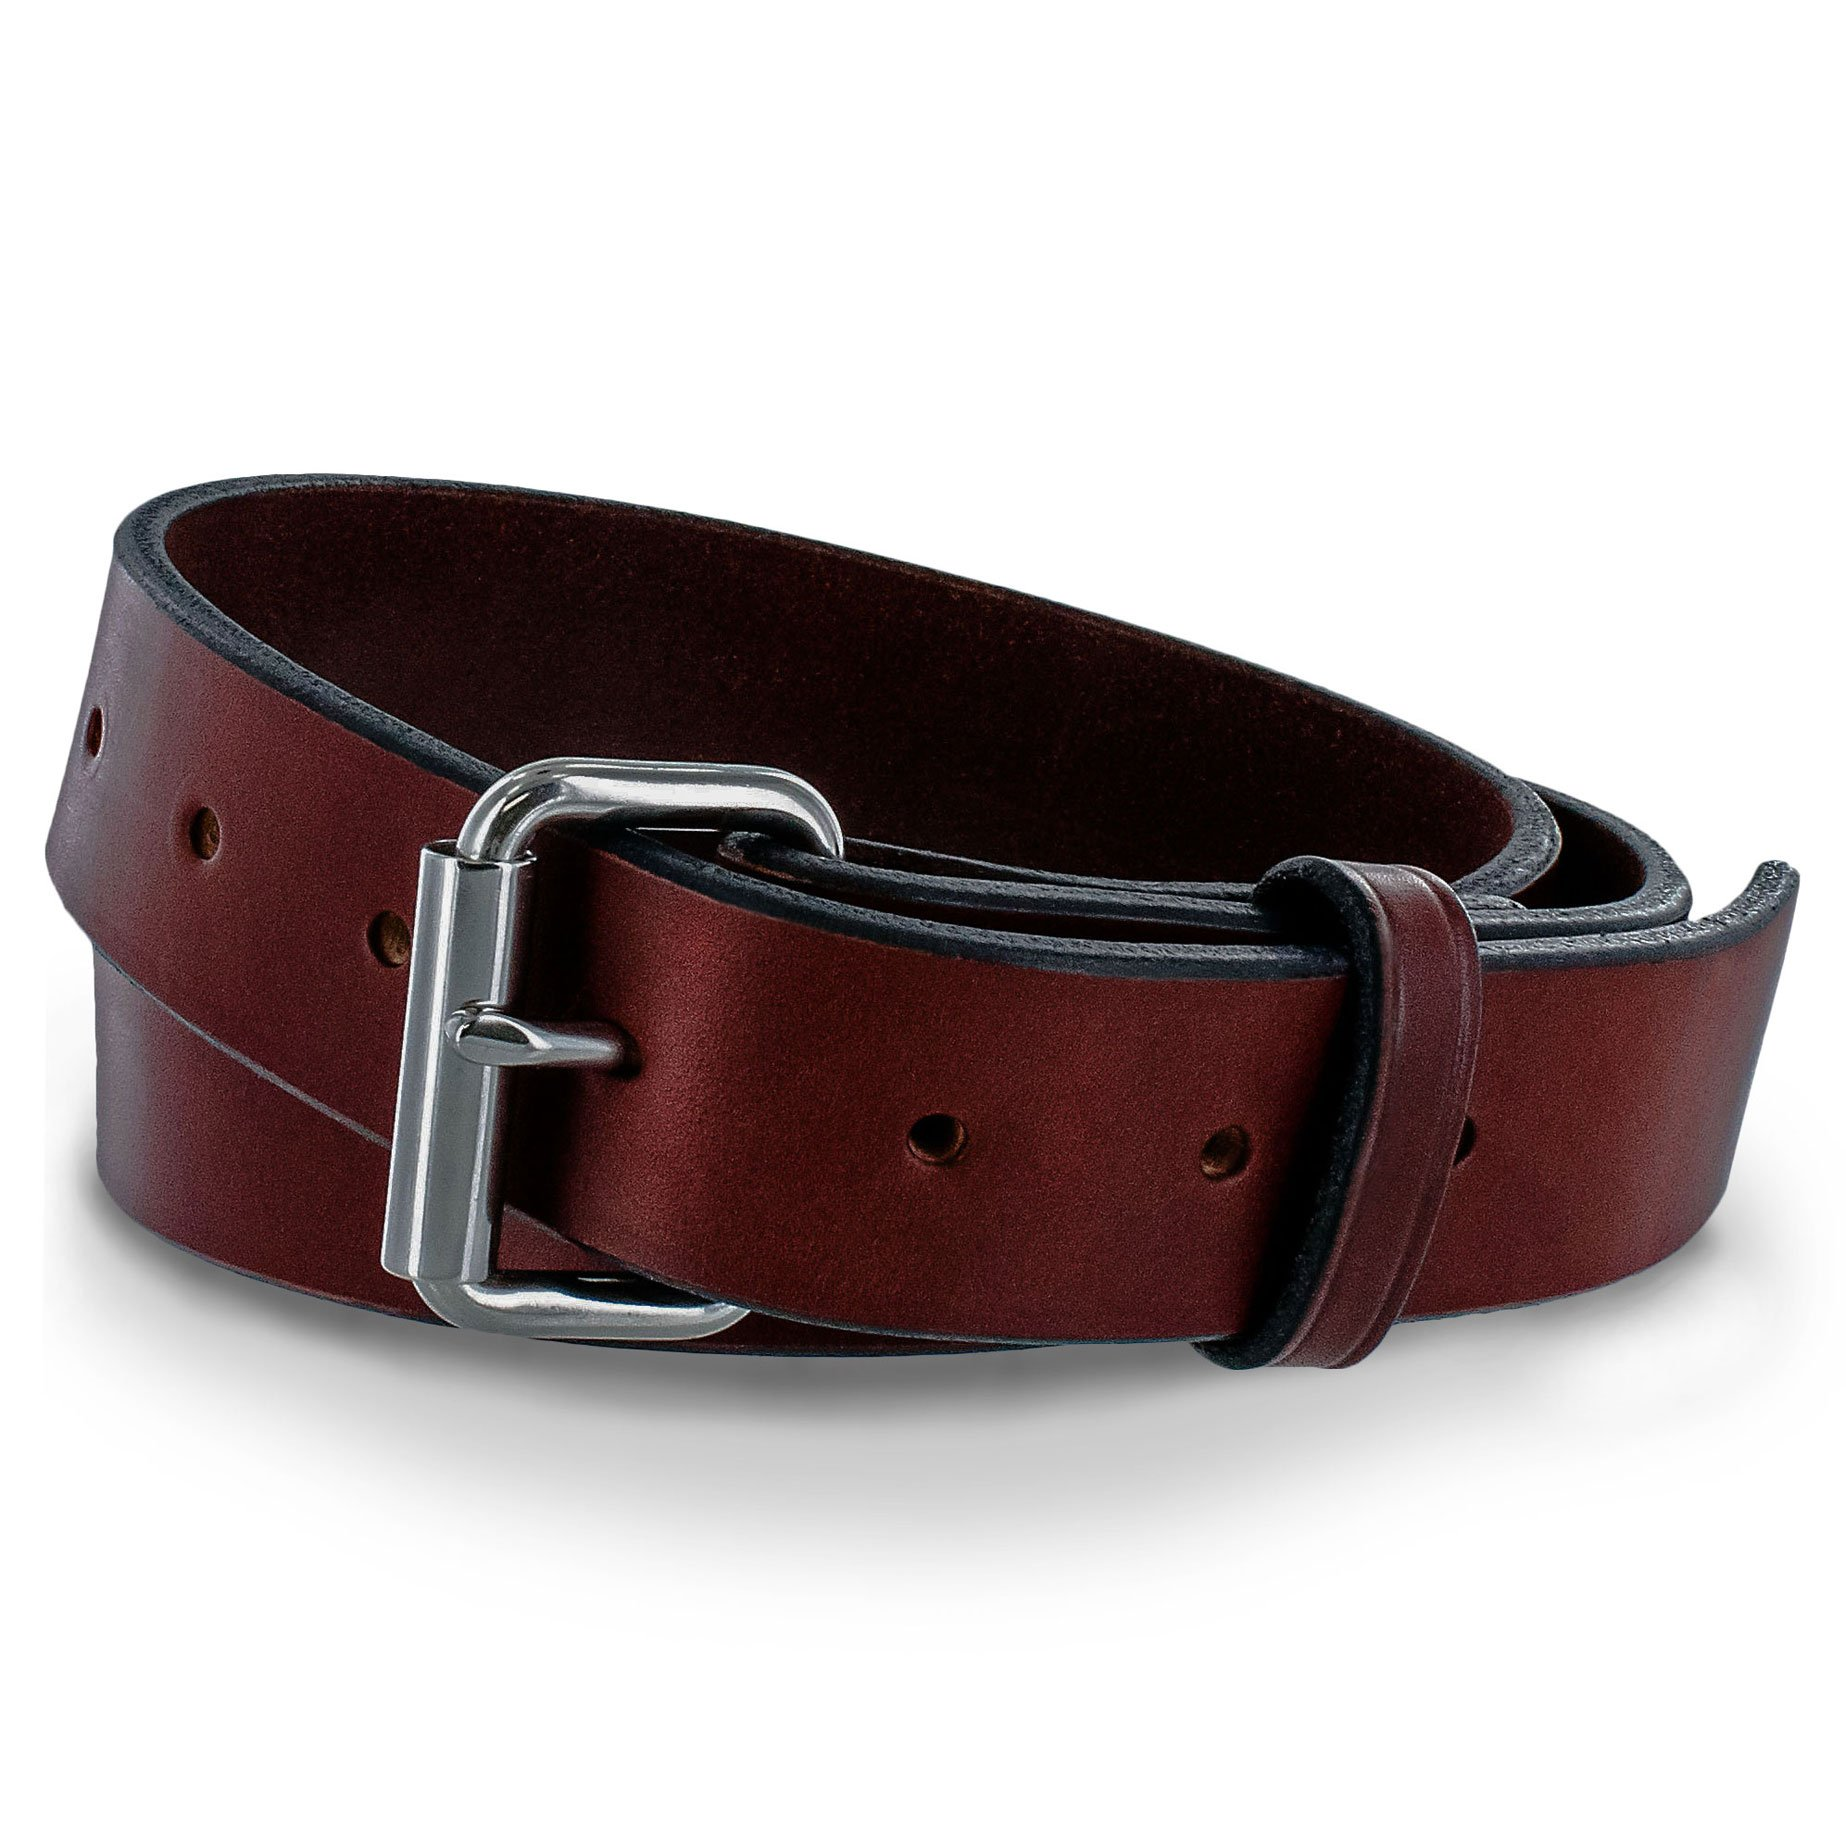 Hanks Gunner - USA Made Concealed Carry CCW Leather Gun Belt - 100 Year Warranty - 14 Ounce - Chestnut - 52 by Hanks Belts